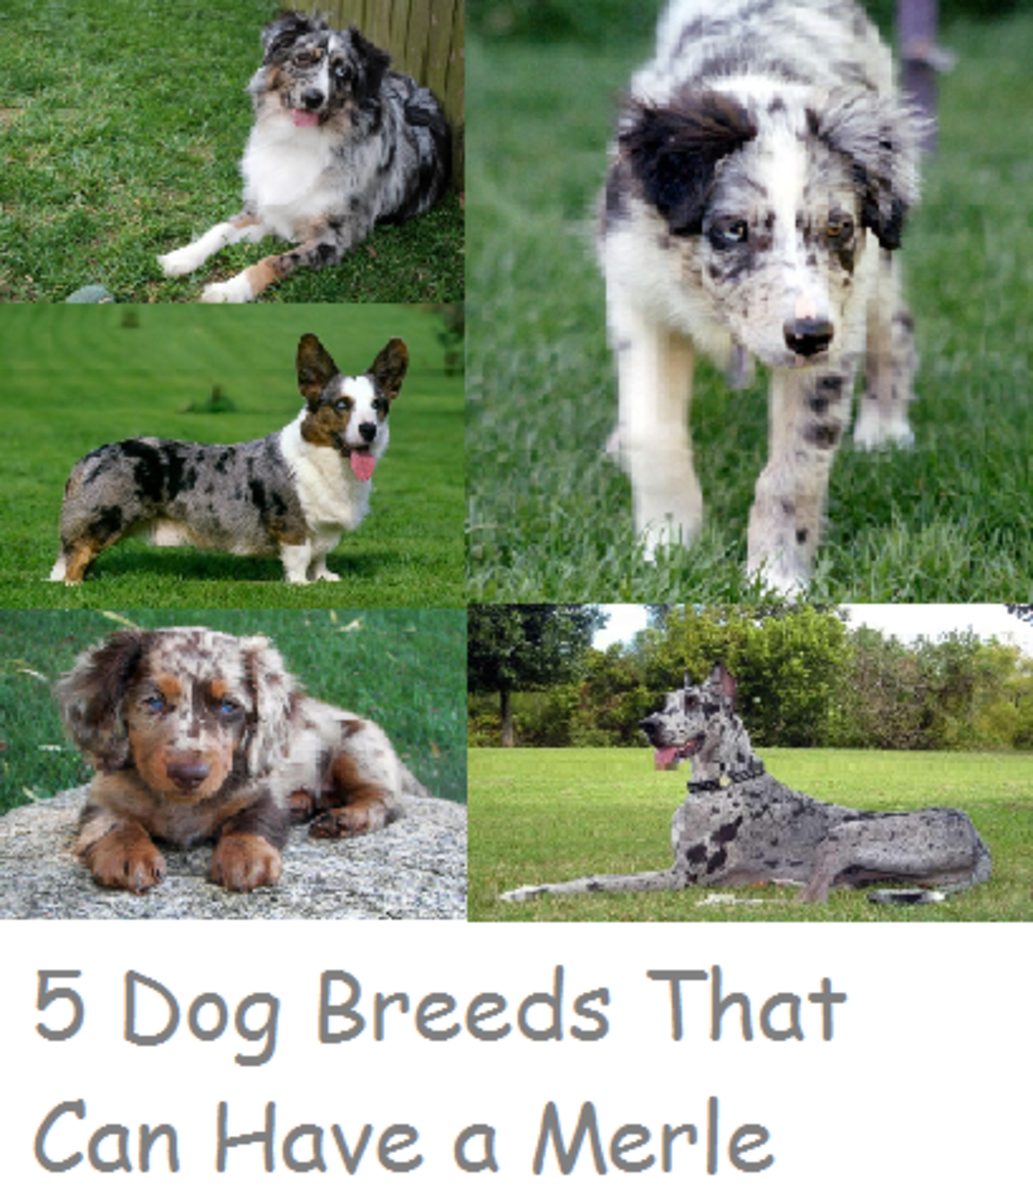 5 Dog Breeds That Can Have a Merle Coat